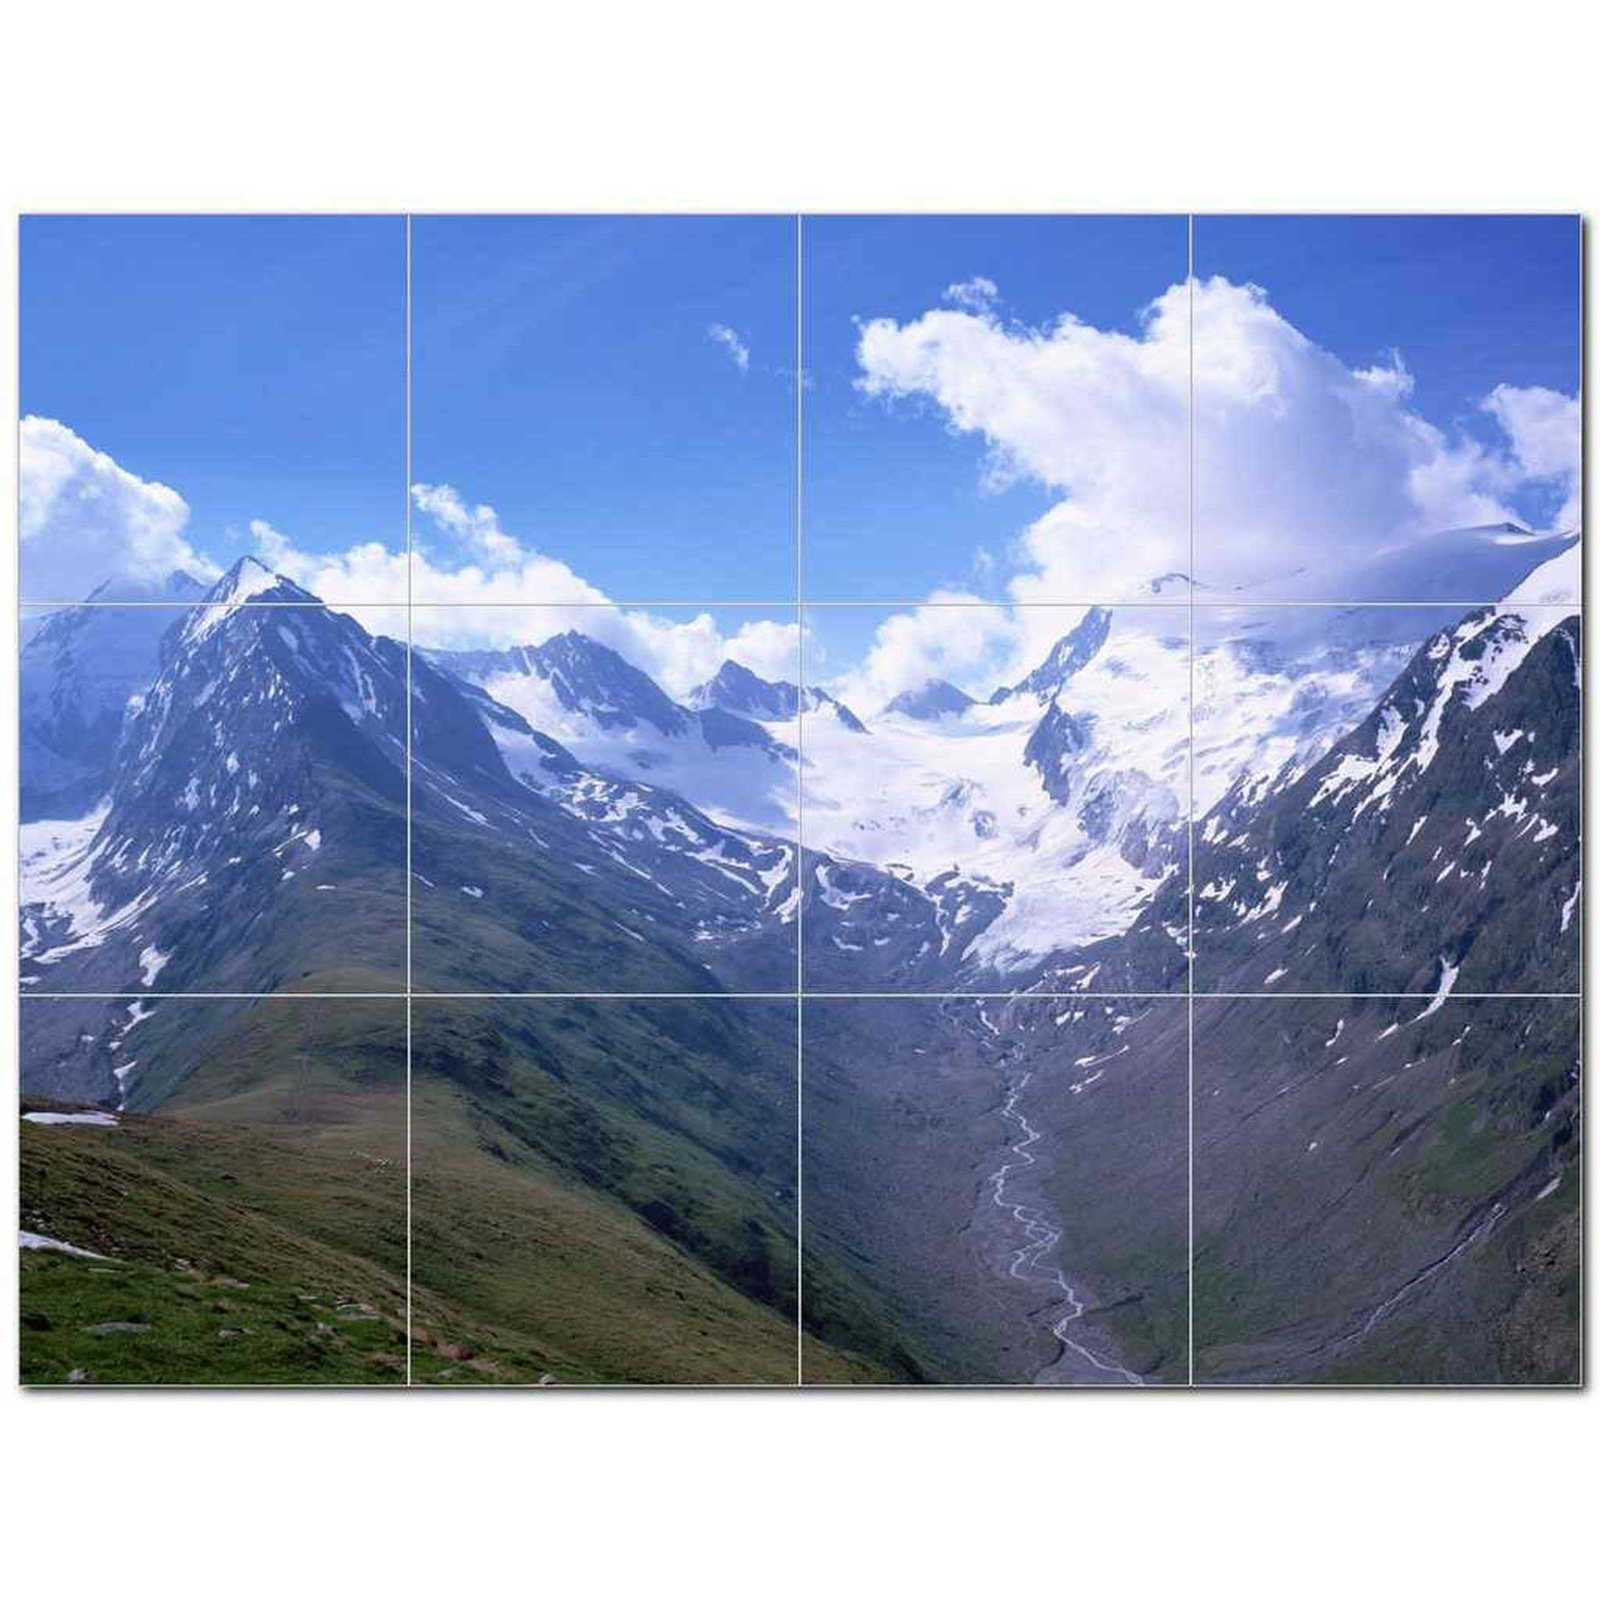 Primary image for Mountain Picture Ceramic Tile Mural Kitchen Backsplash Bathroom Shower BAZ405565